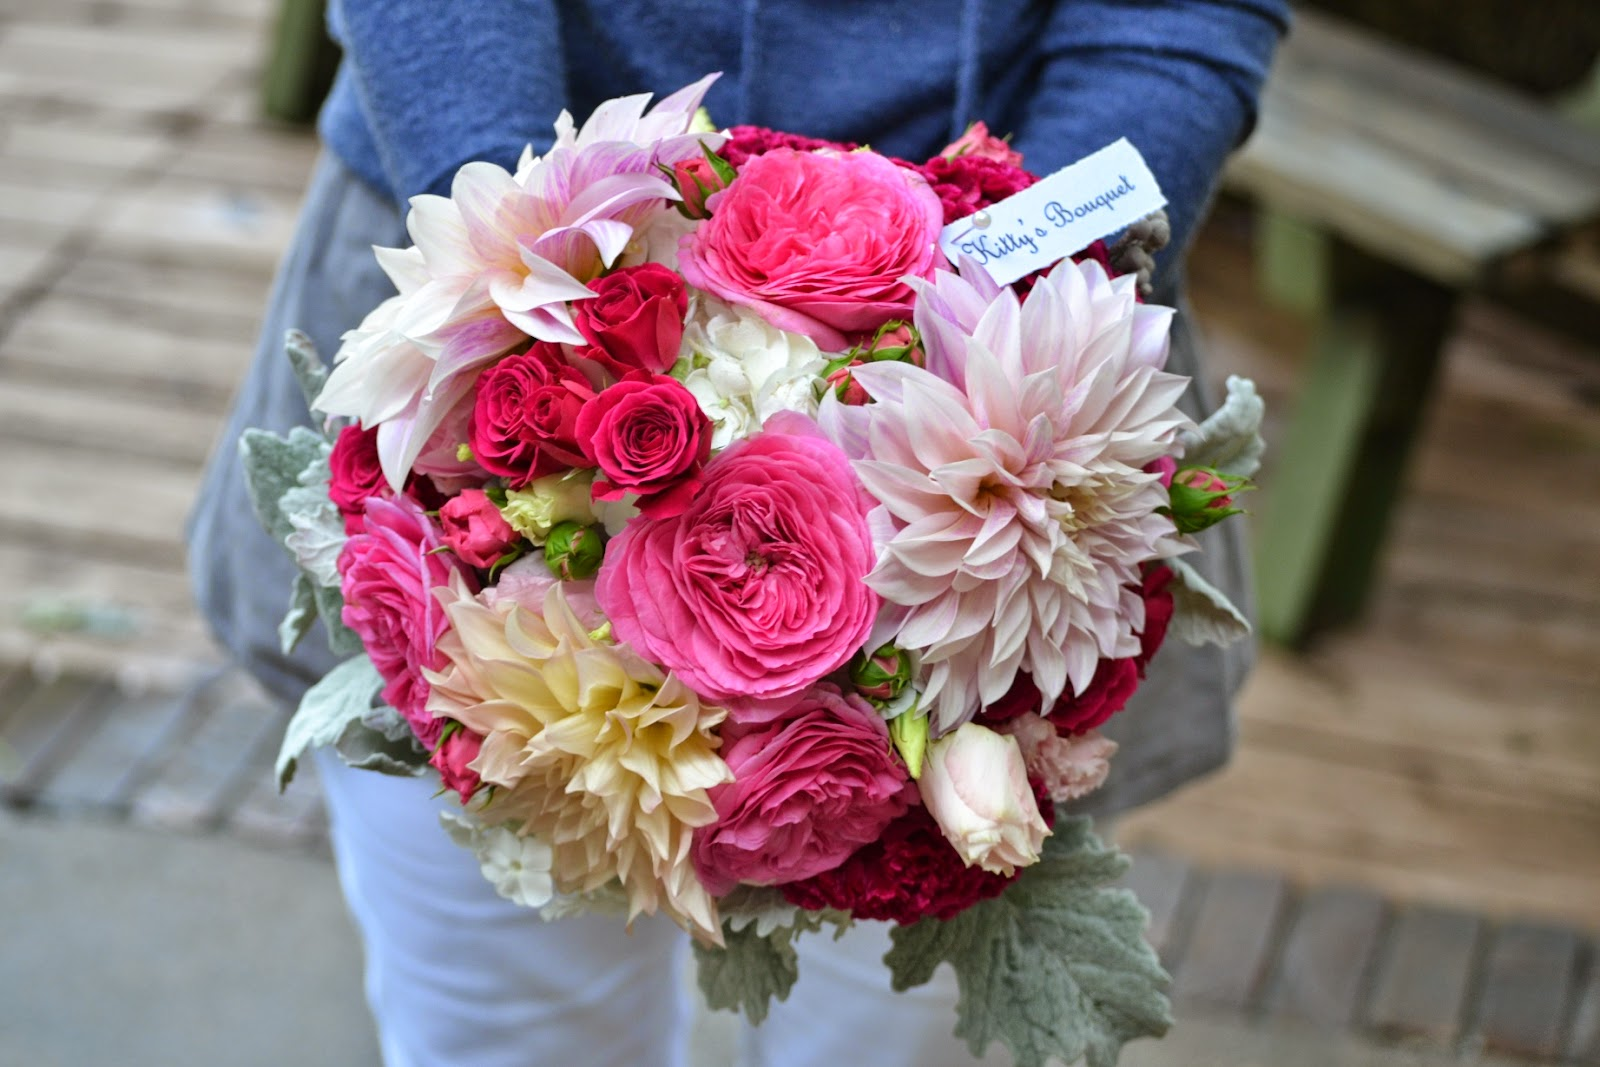 Wedding Flowers from Springwell: Dahlia! A Most Lovely Wedding Flower!!!